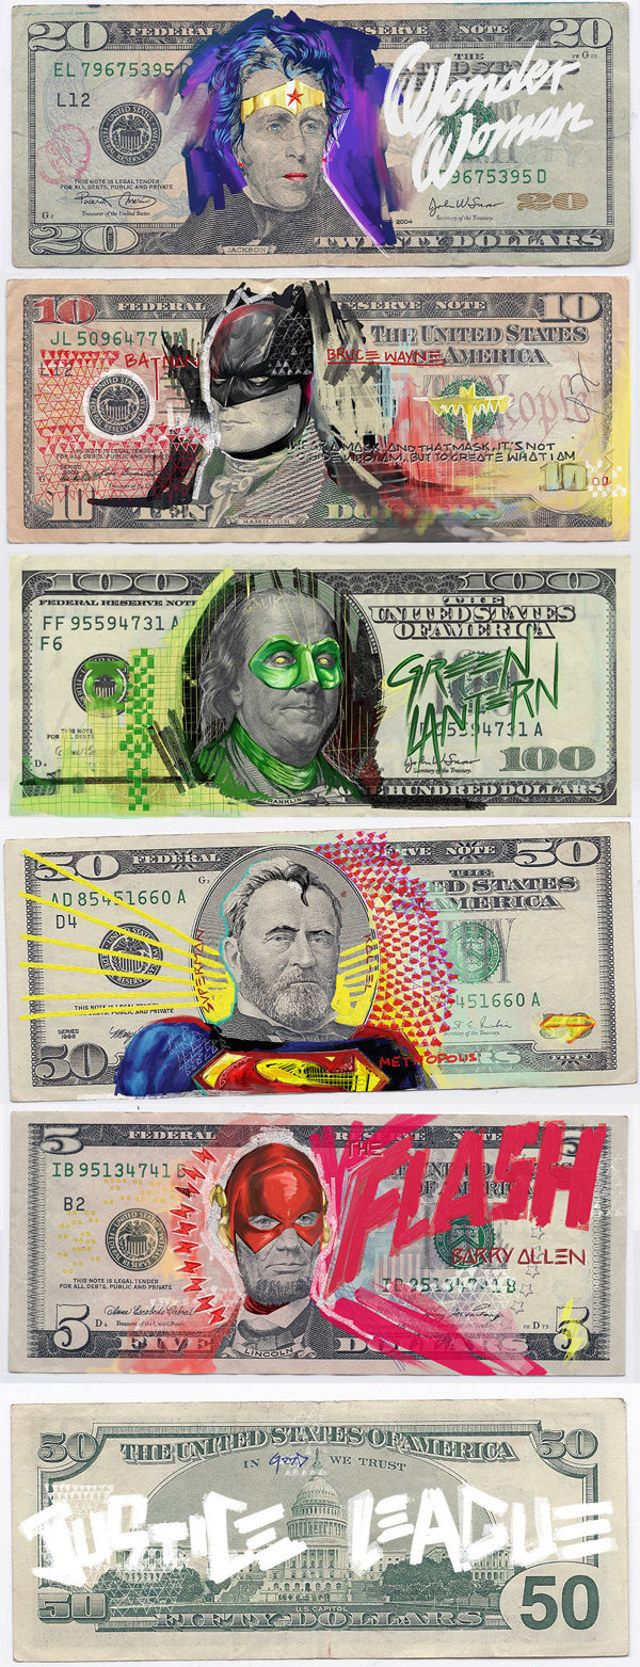 US Bills Defaced With Justice League Characters by artist Aslan Malik.